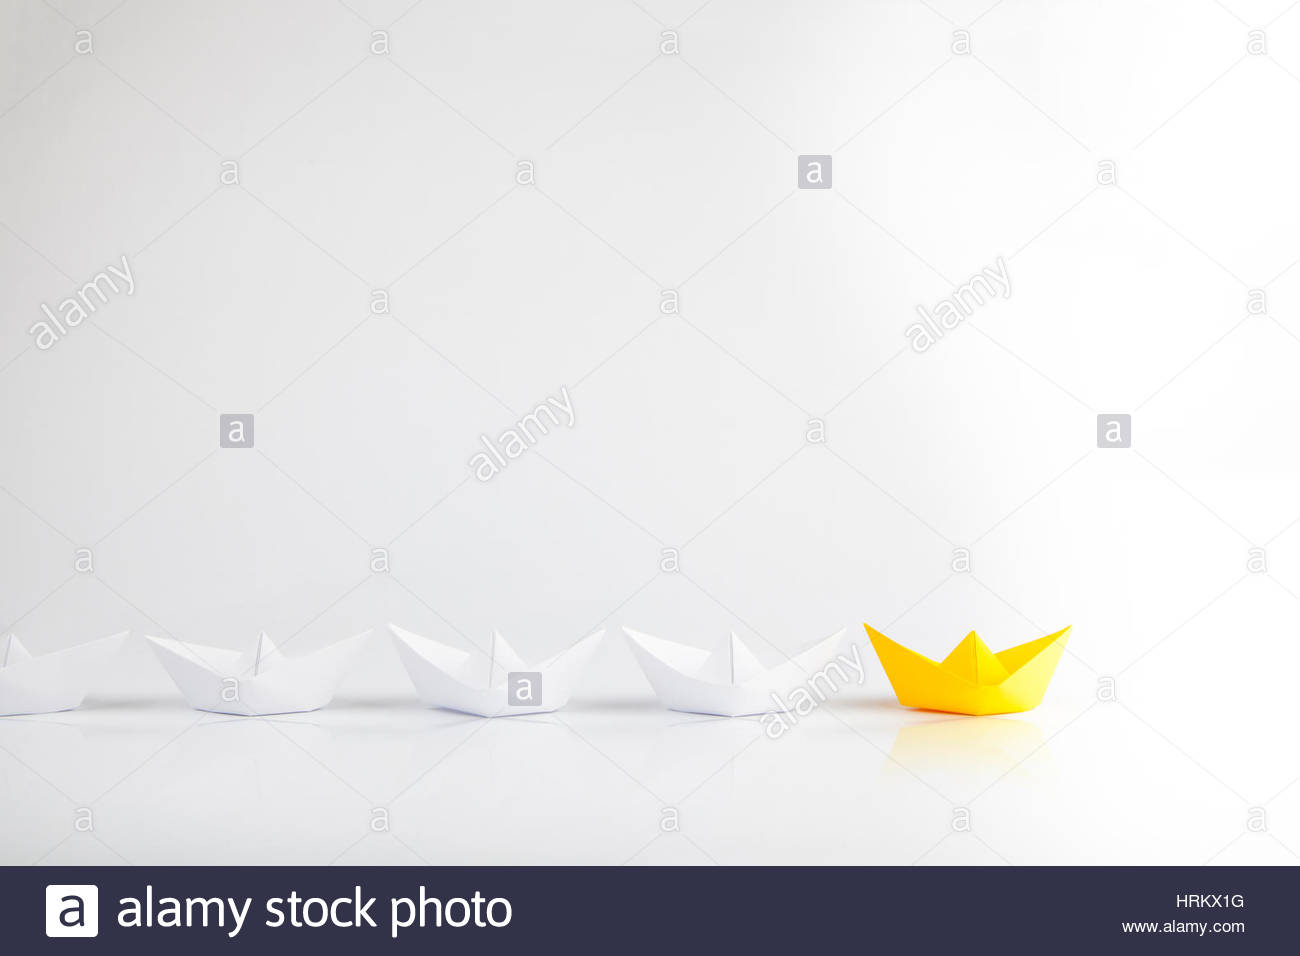 Leadership concepts with yellow paper ship leading among white - Stock Image